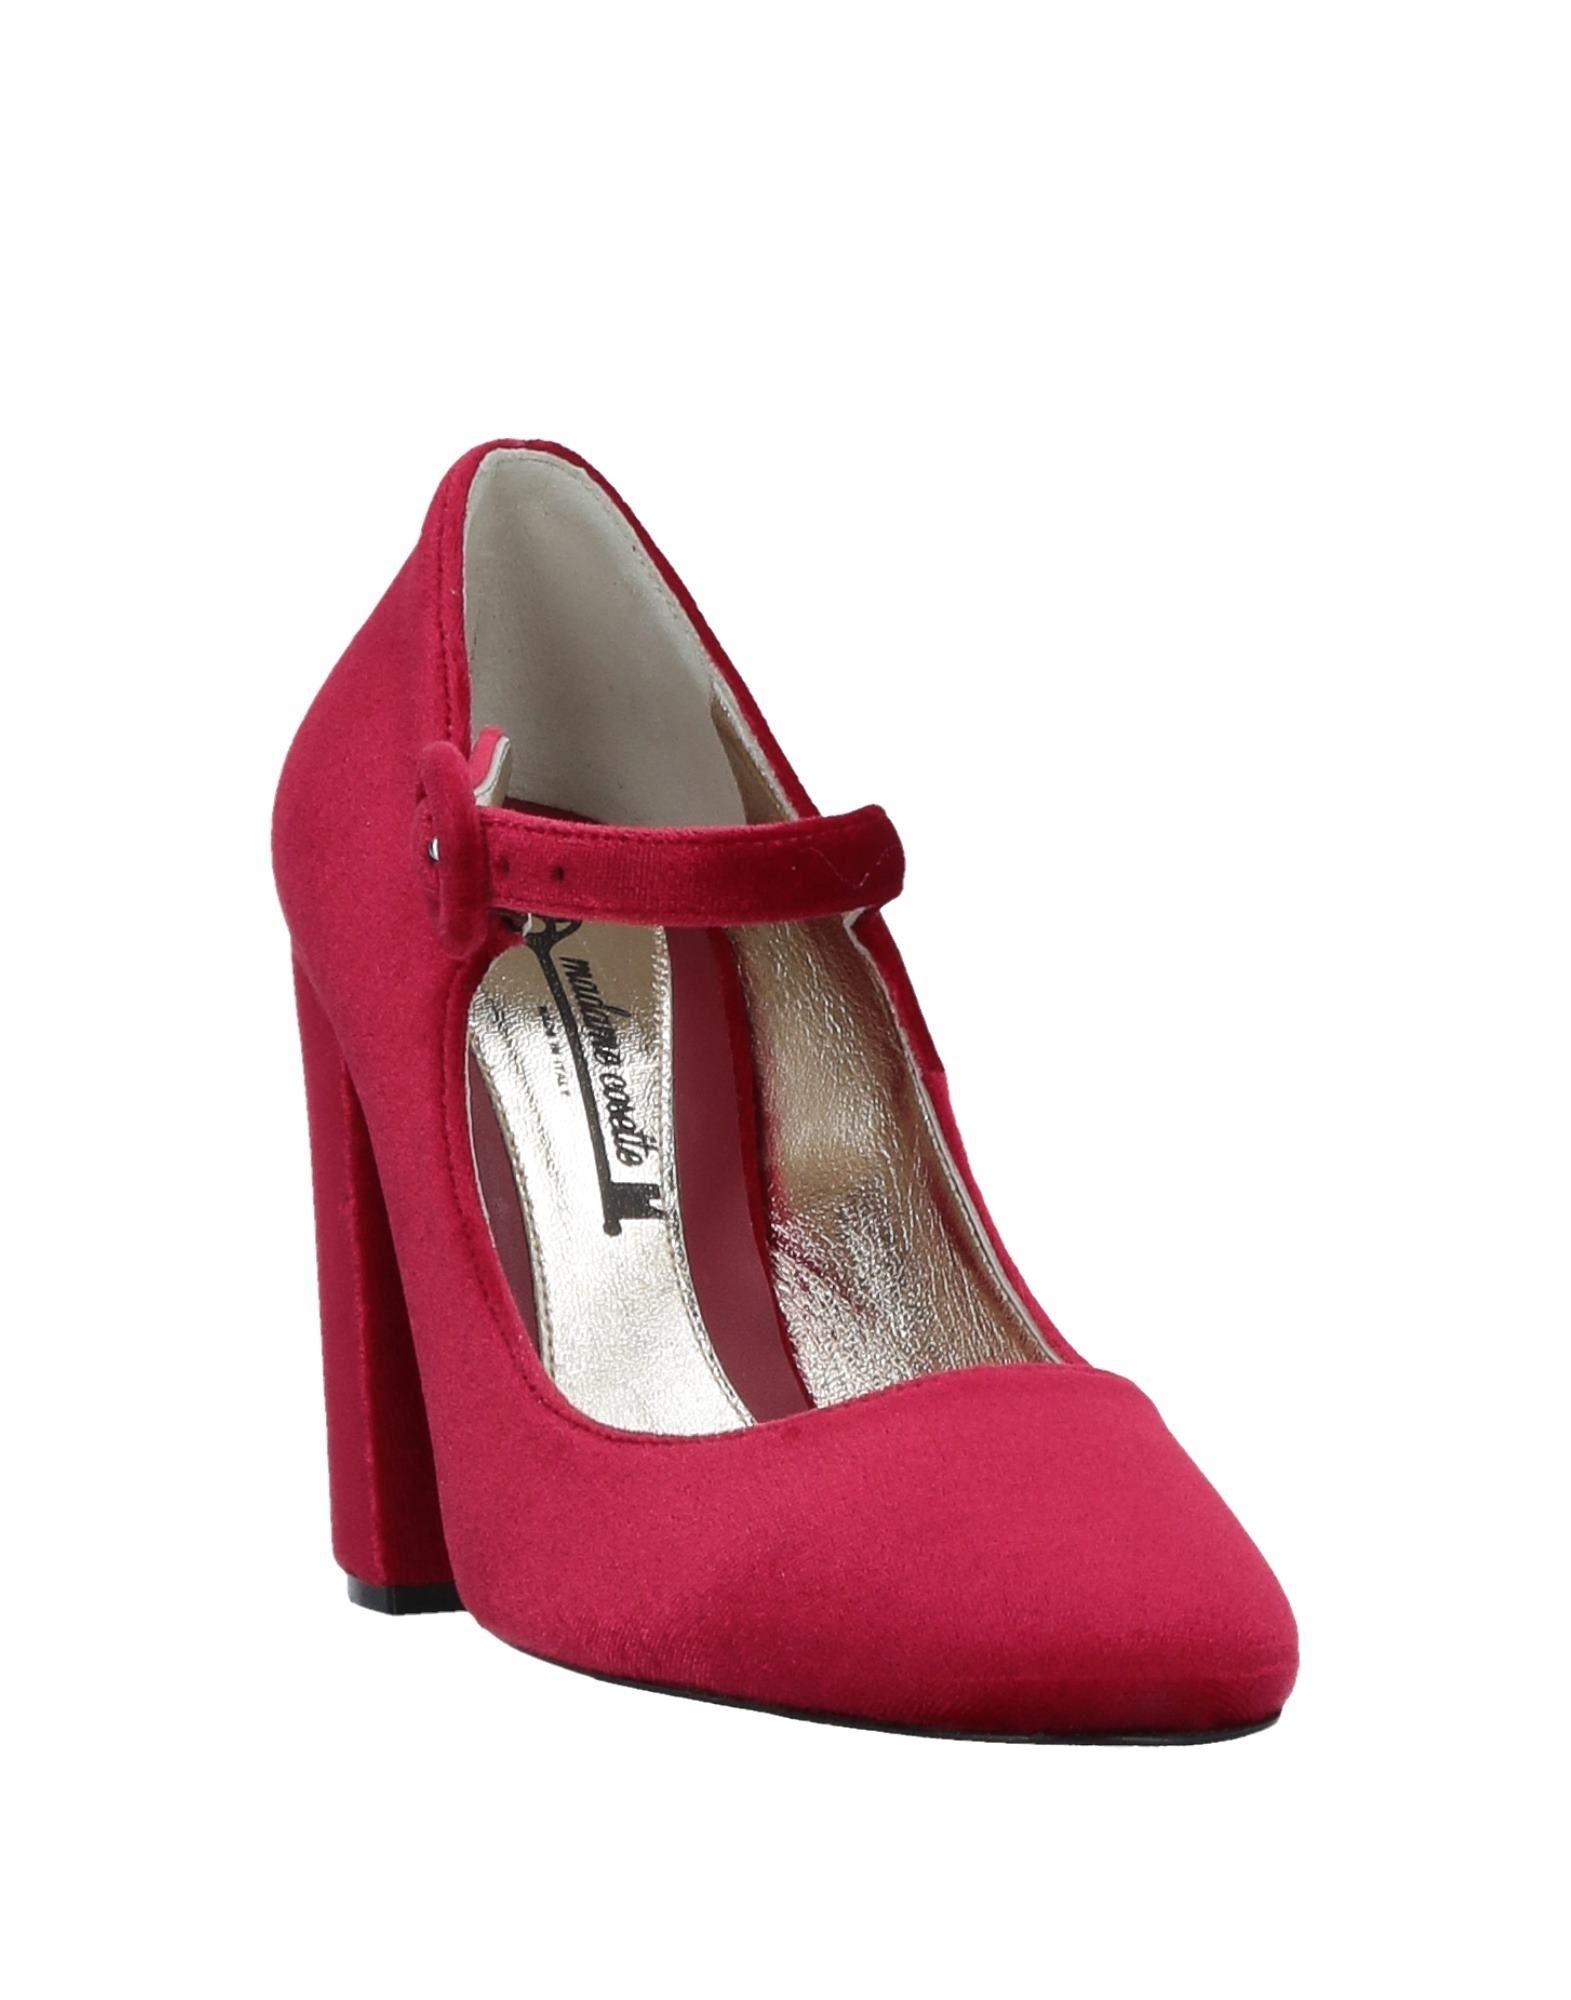 Lyst - Madame Cosette Pump in Red c8afdfcd66f